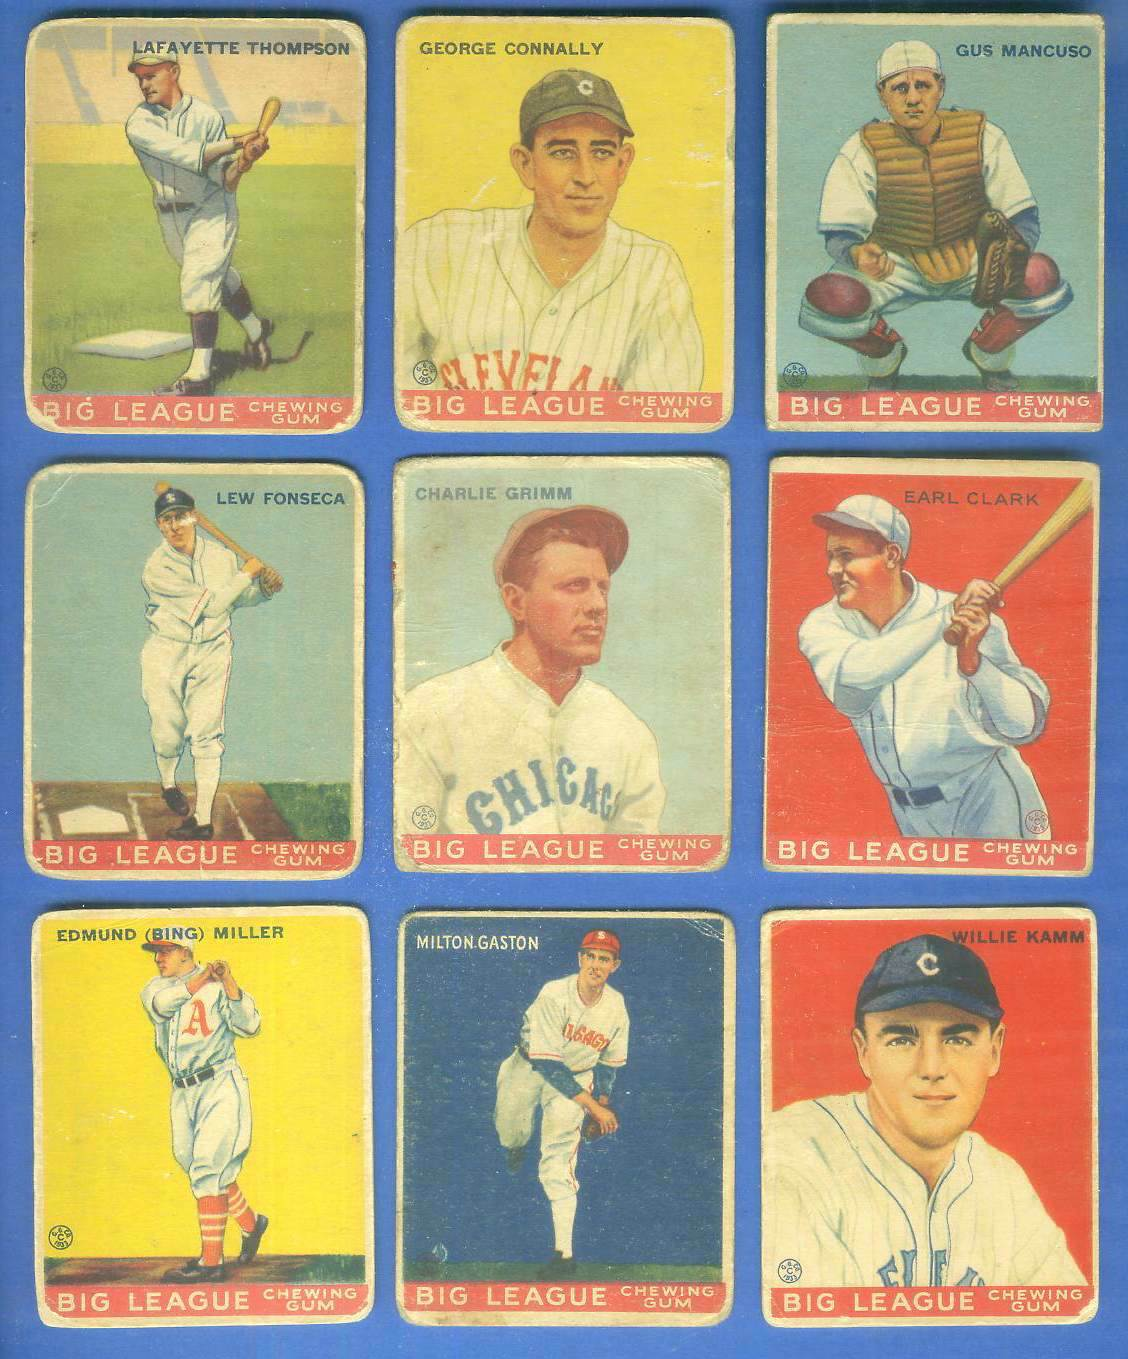 1933 Goudey #.41 Gus Mancuso (Catching) Baseball cards value